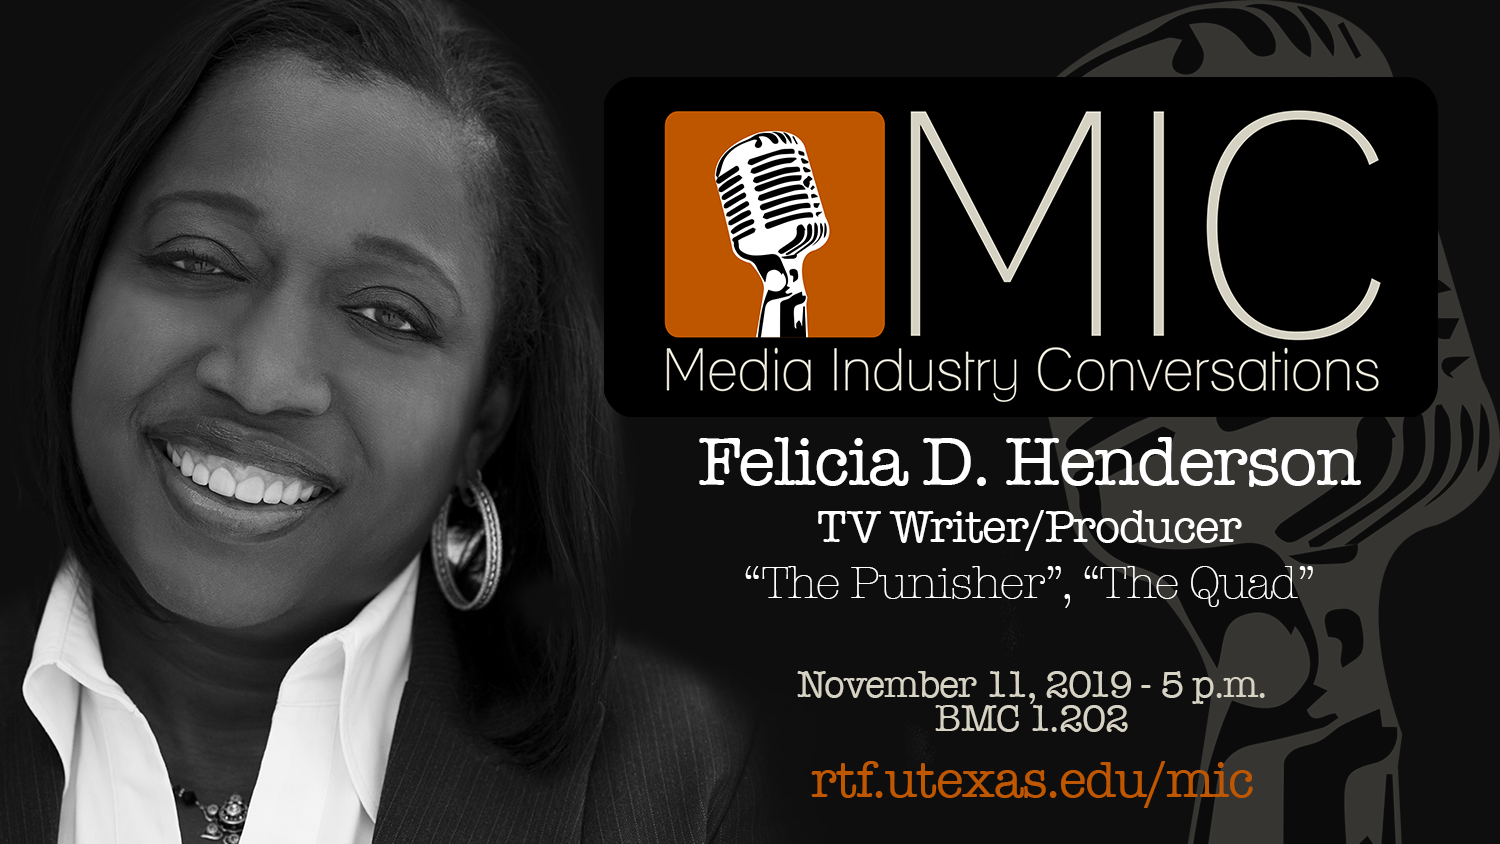 Media Industry Conversation wtih Felicia D Henderson 5 pm on Nov 11, 2019 in BMC 1.202